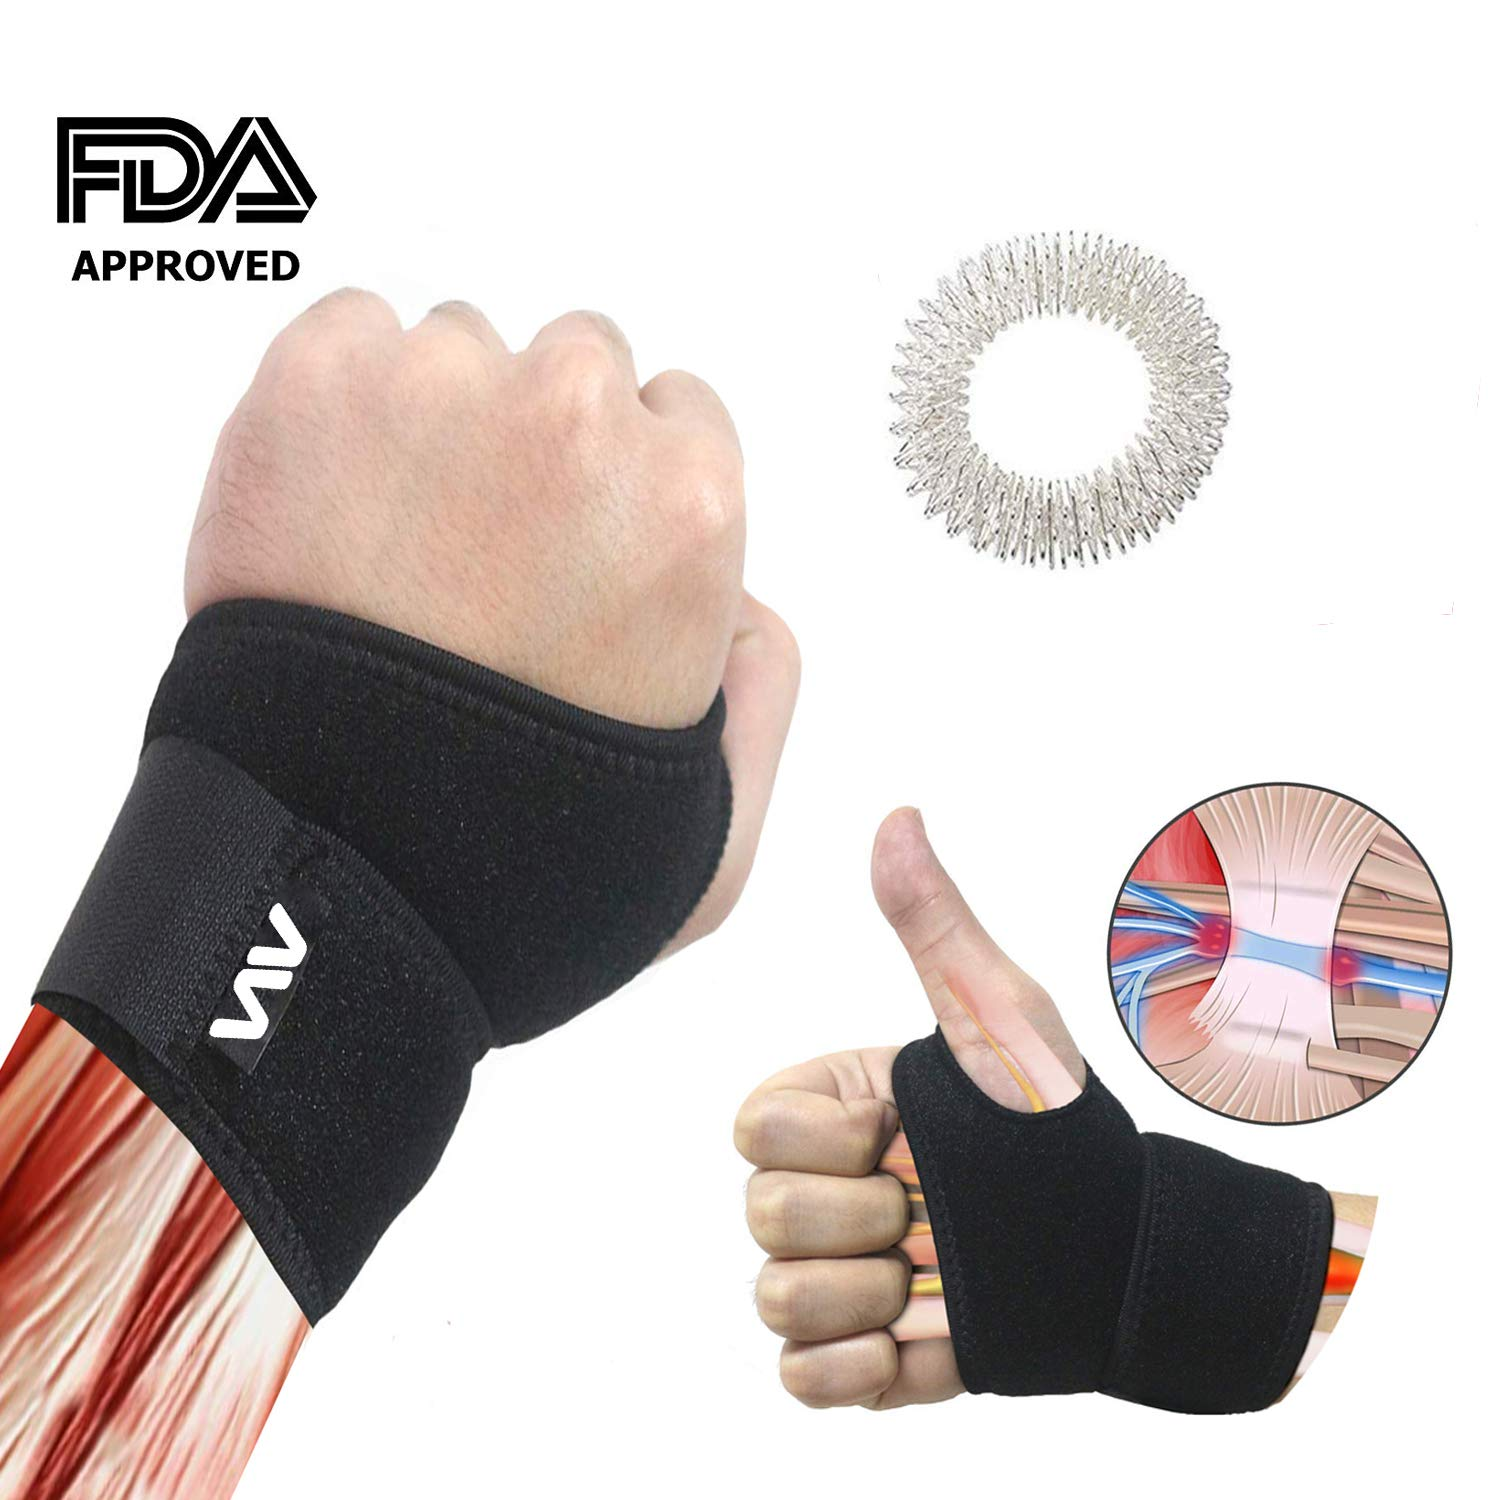 Help My Wrist Pain a Great Deal